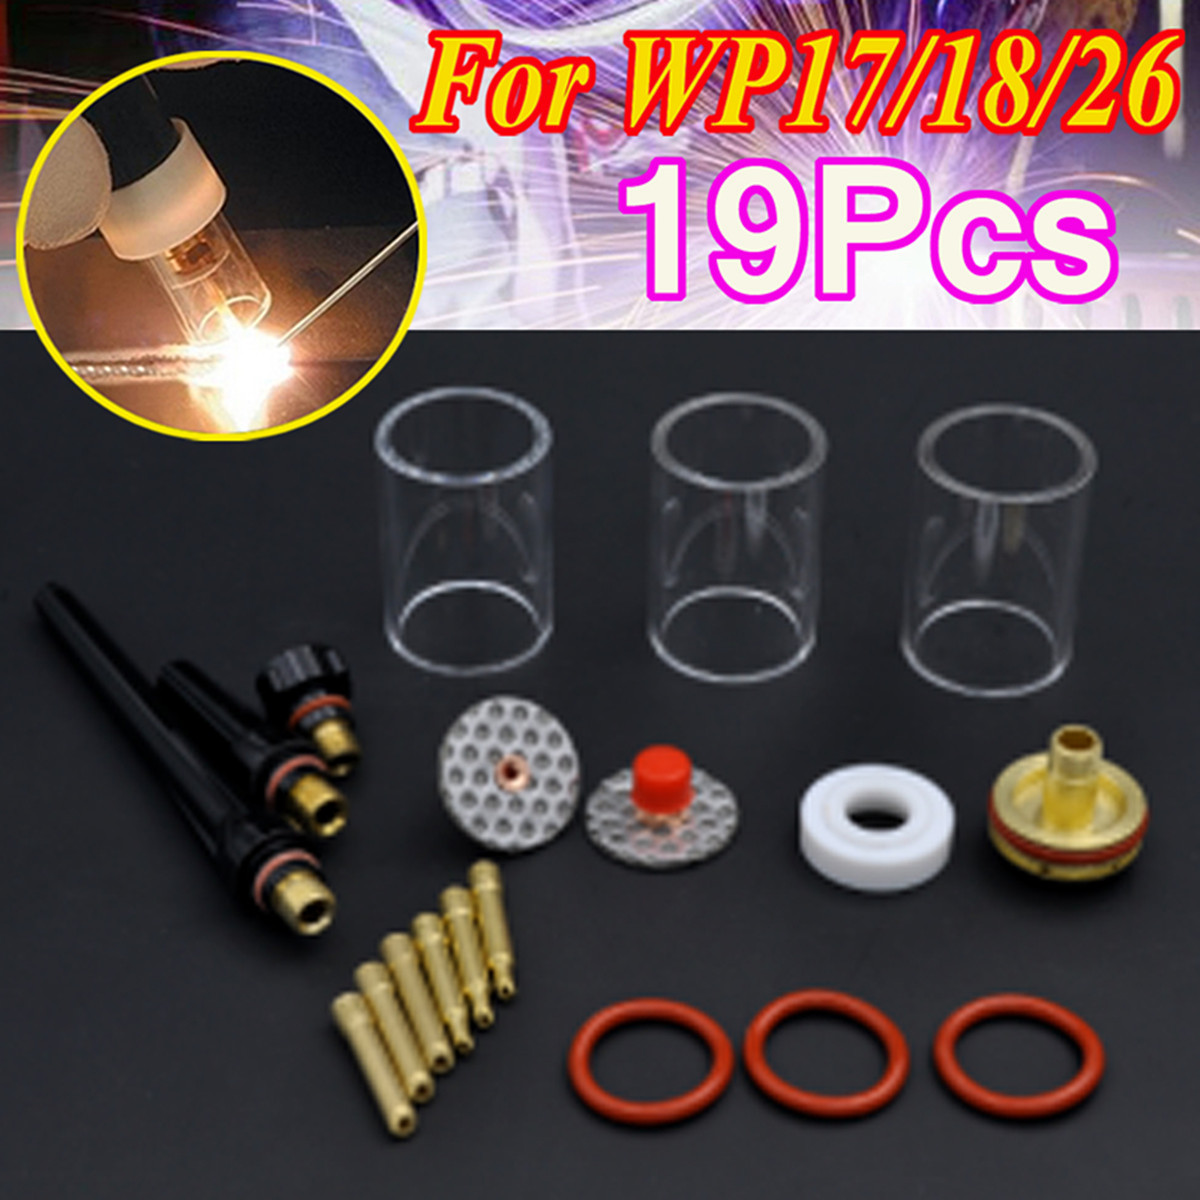 19PCs 1.0mm+2.4mm TIG Welding Torch Kit Tungsten Needle Clip Stubby Collet Body Gas Lens Pyrex Glass Cup for WP-17/18/26 Series 18 pk tig torch large gas lens wp 9 20 25 wp tungsten 0 04 1 16 3 32